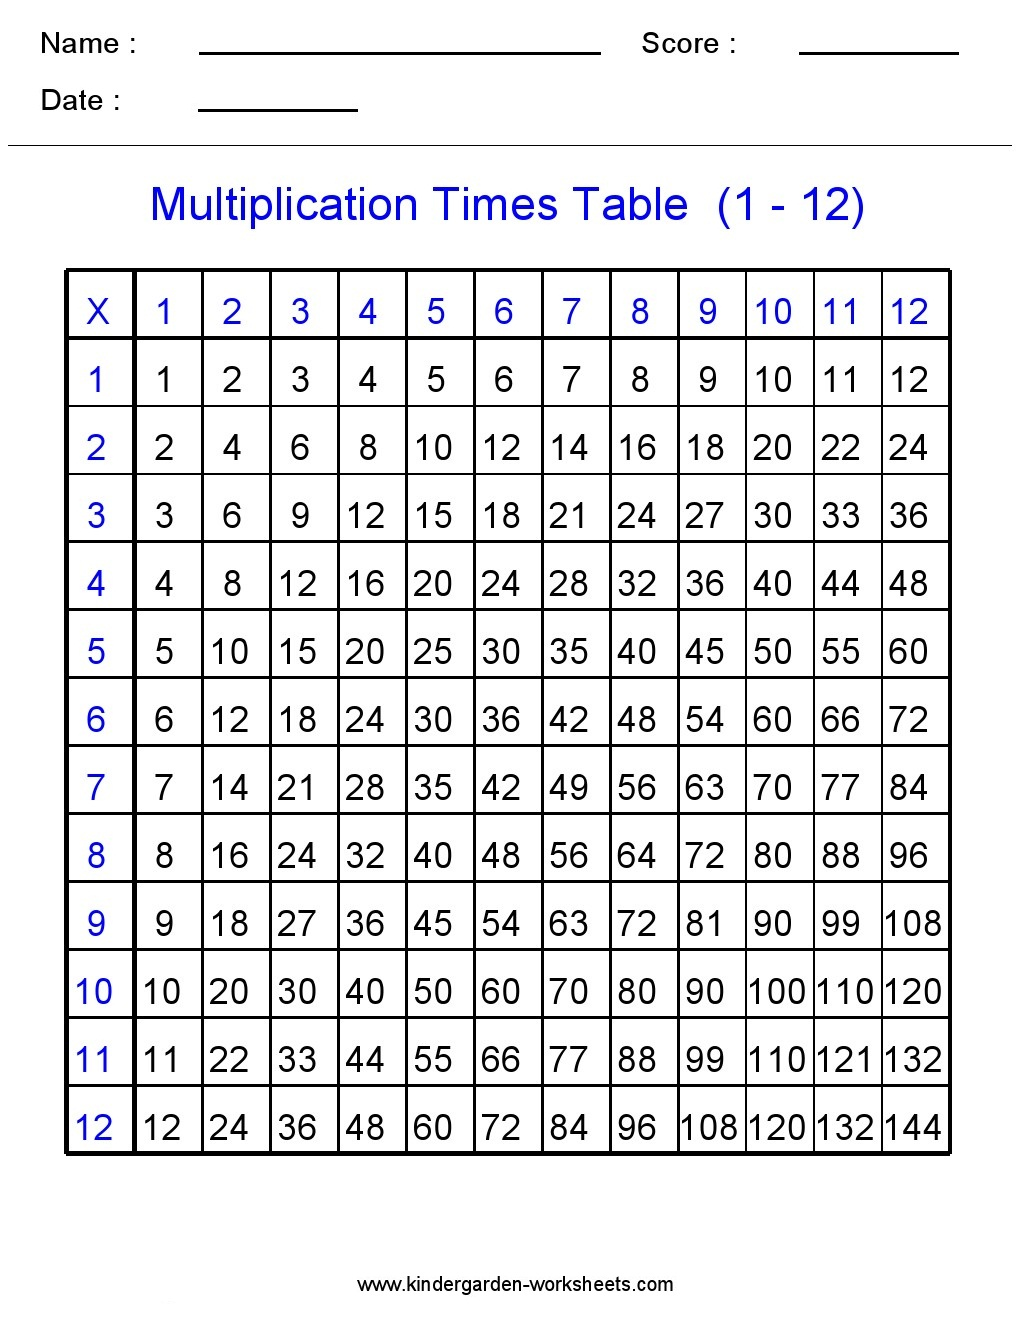 Multiplication table for 3rd grade brokeasshome kindergarten worksheets maths multiplication nvjuhfo Gallery